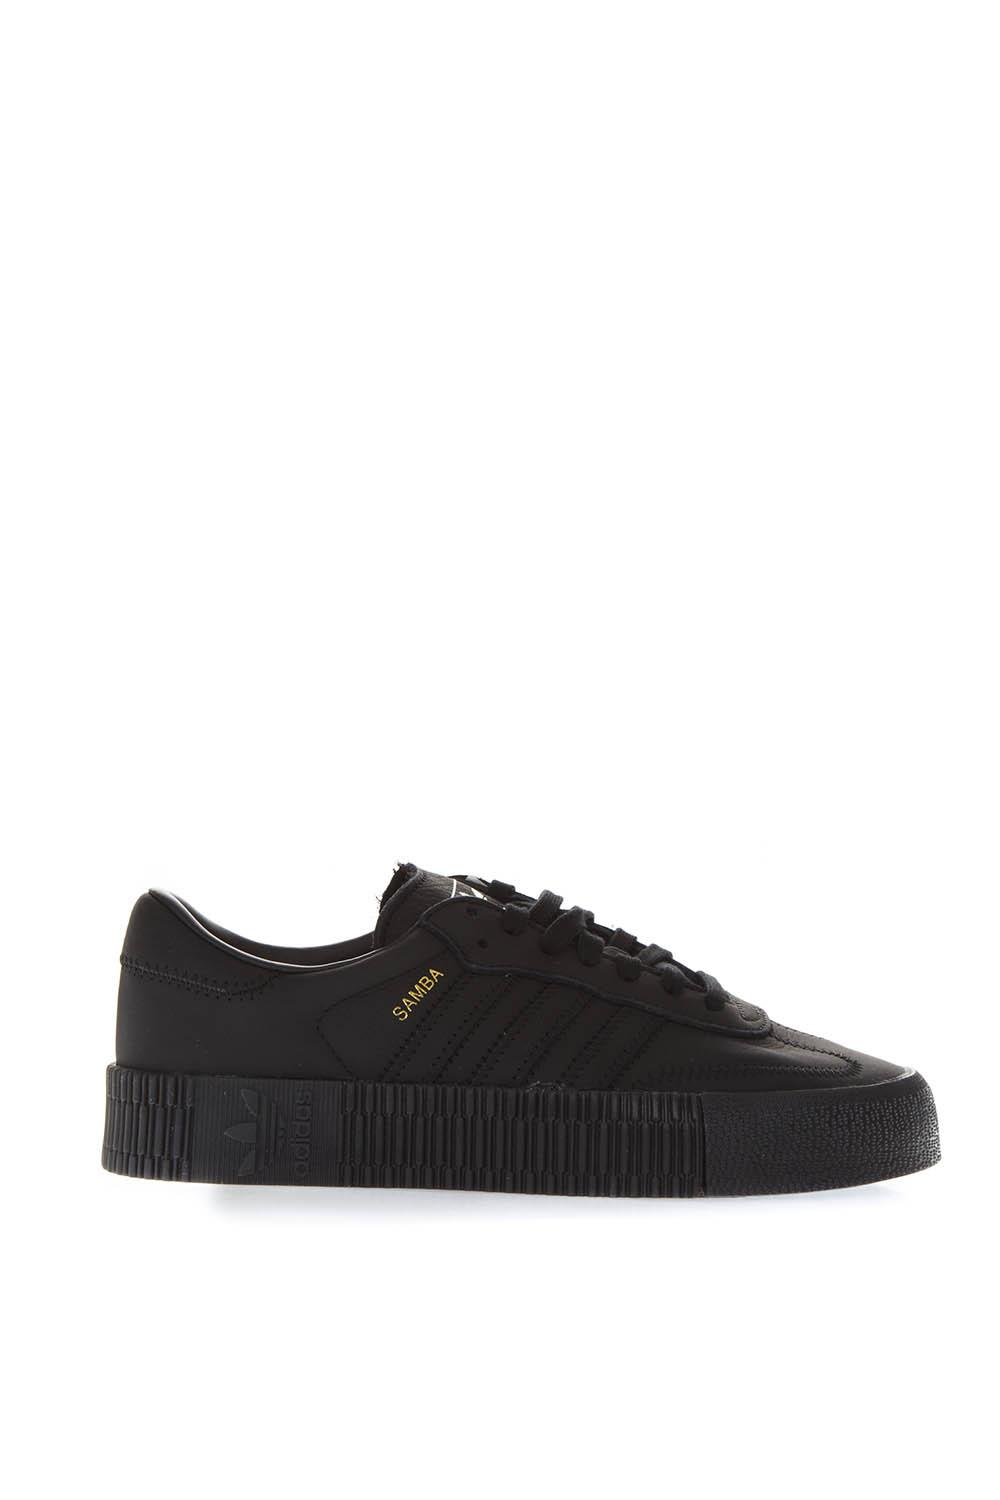 8968aaa68330 SAMBA BLACK LEATHER SNEAKERS FW 2018 - ADIDAS ORIGINALS - Boutique Galiano